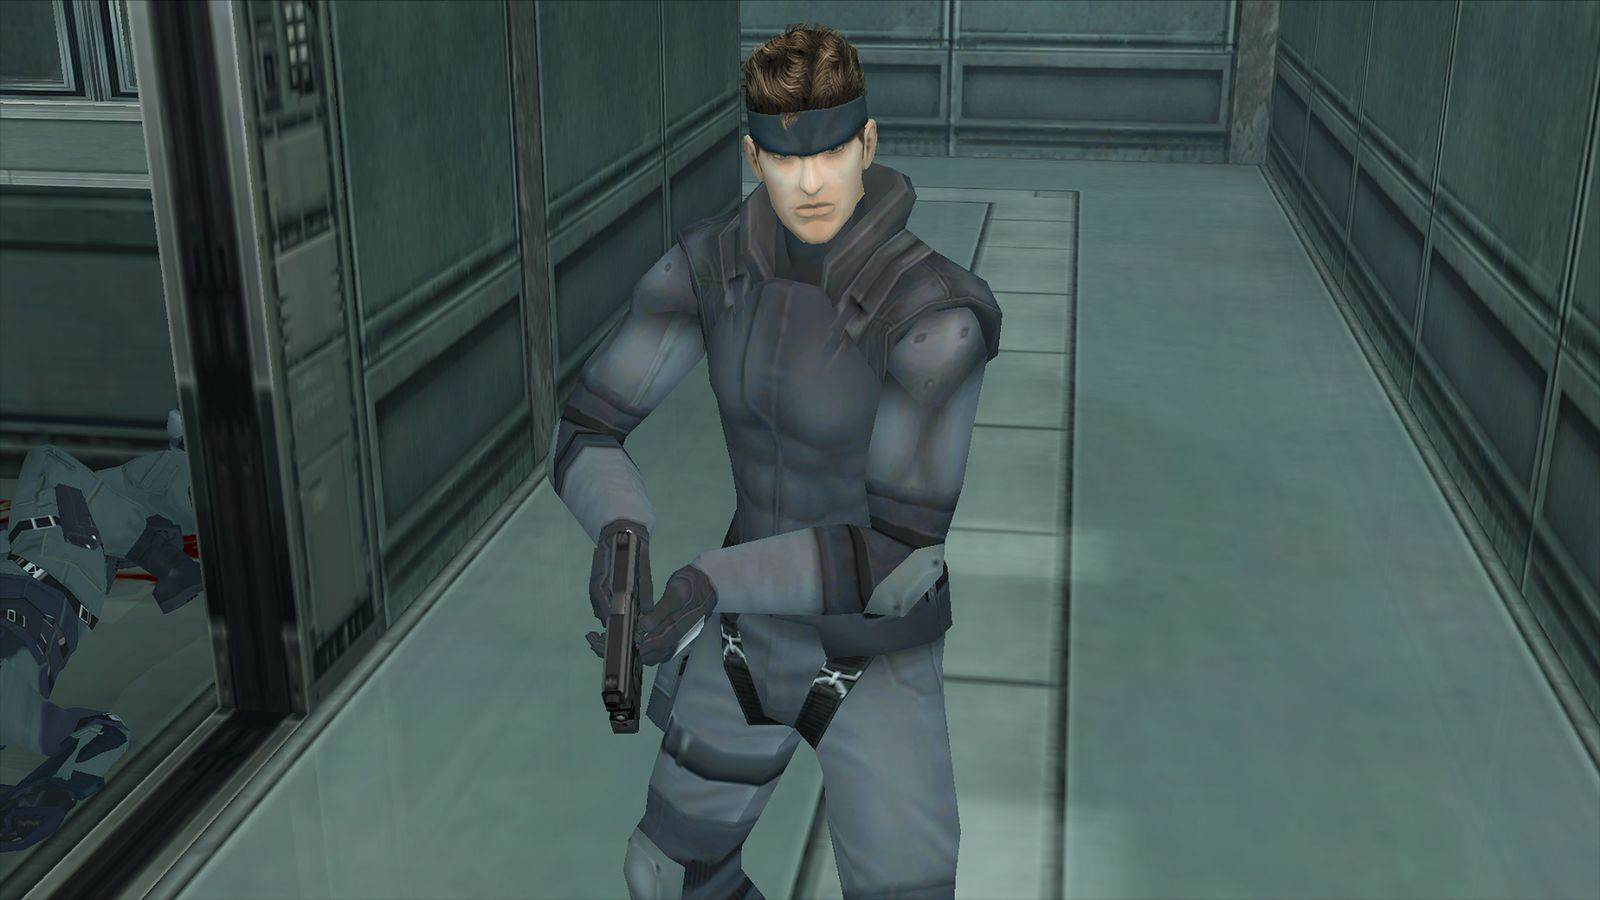 mgs 01 Fans Make Metal Gear VR App With Original Snake Voice Actor